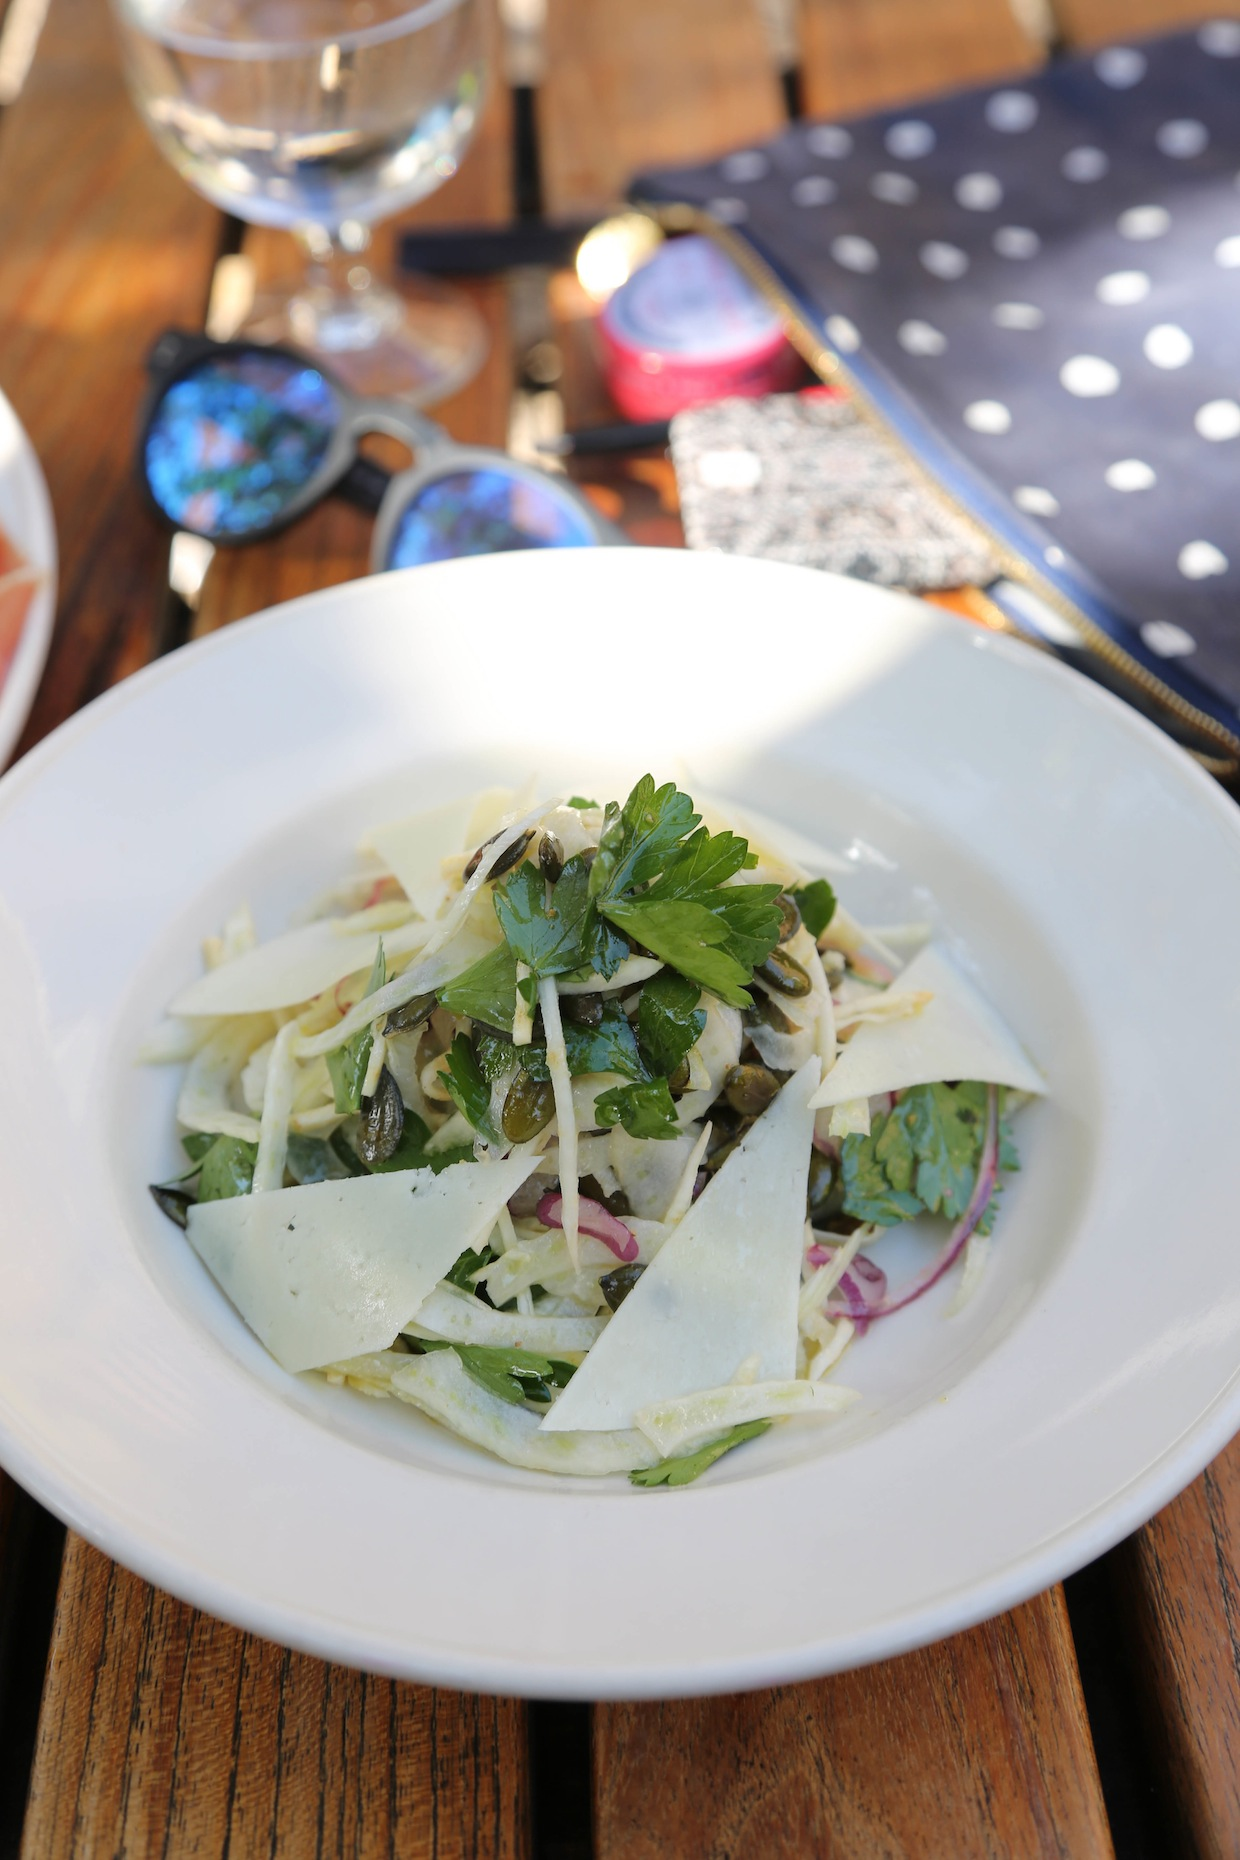 fennel-and-cheese-salad